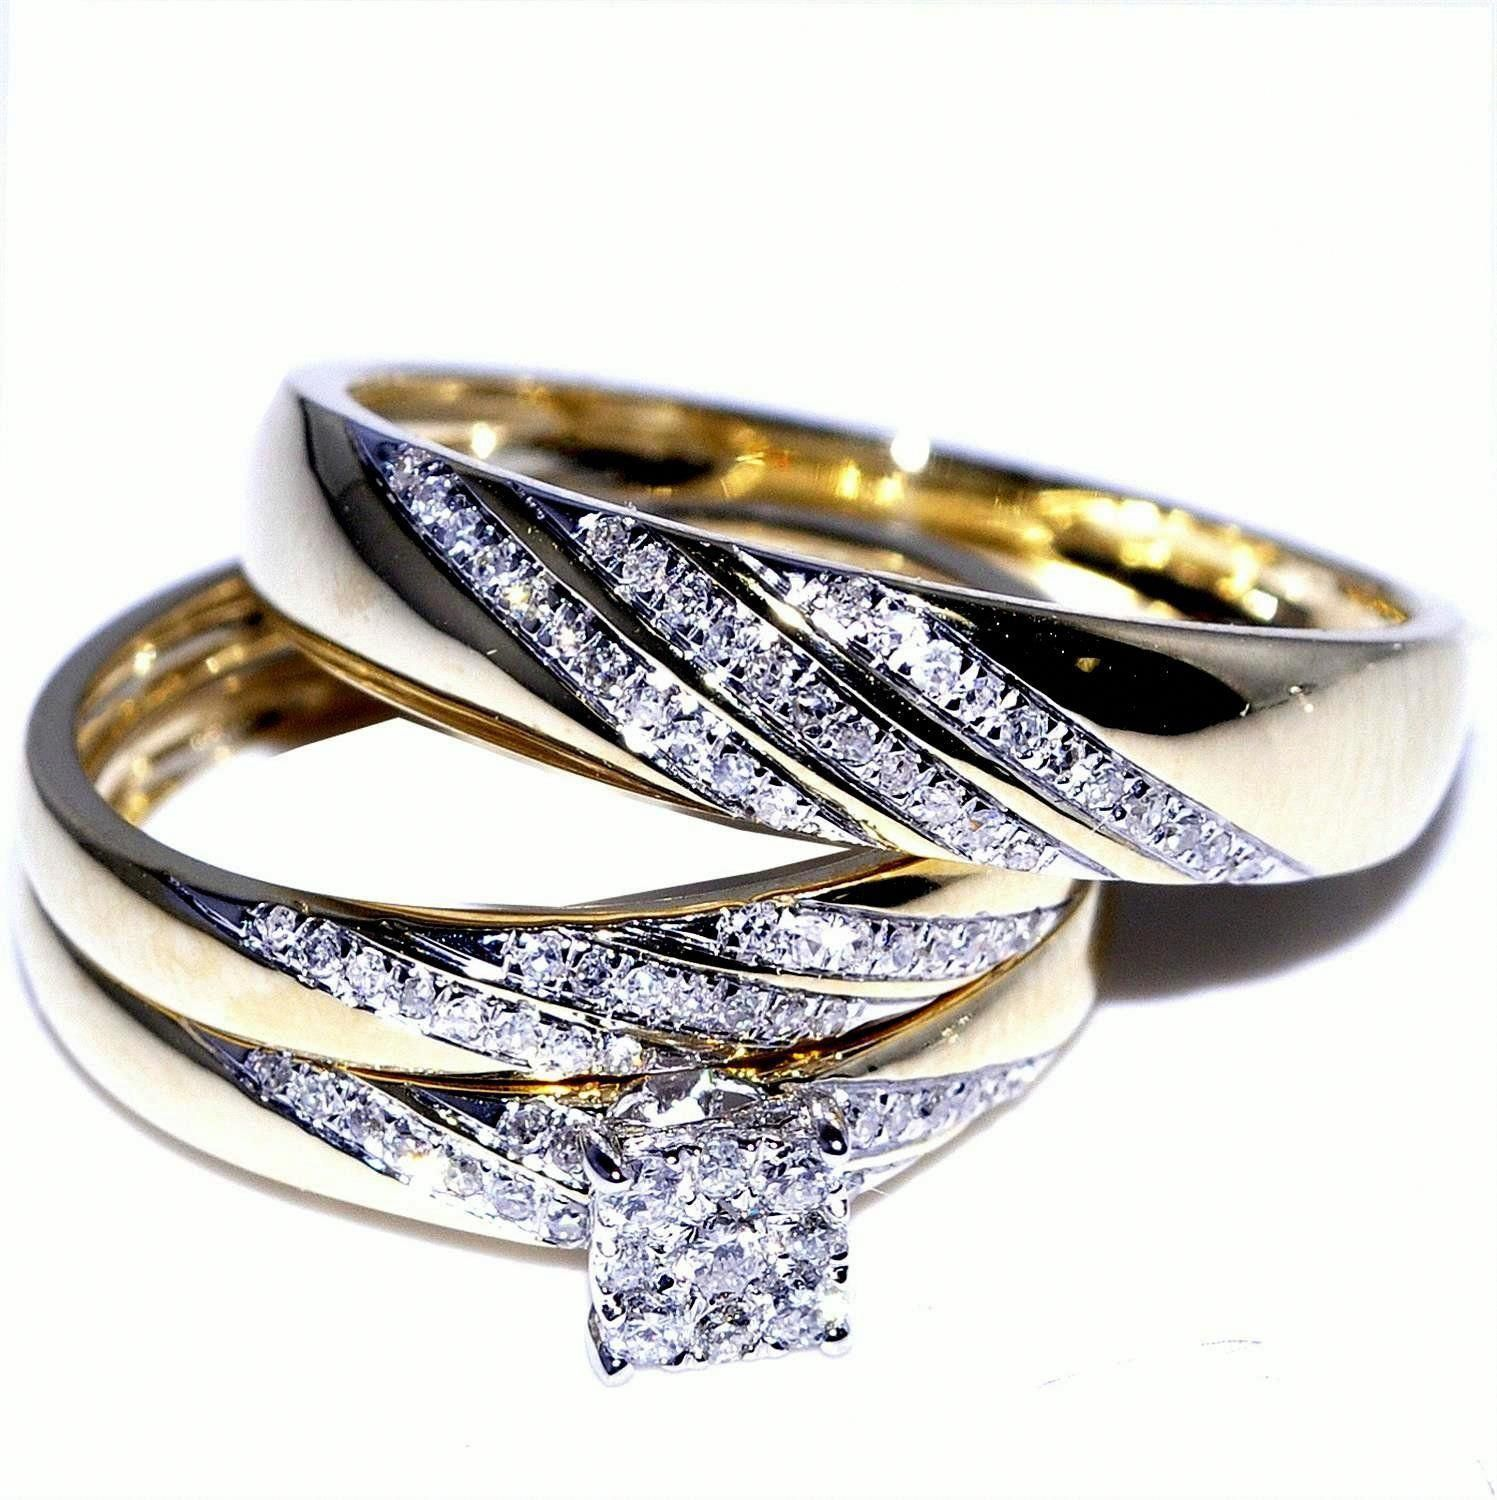 Selecting His and Hers Wedding Ring Sets